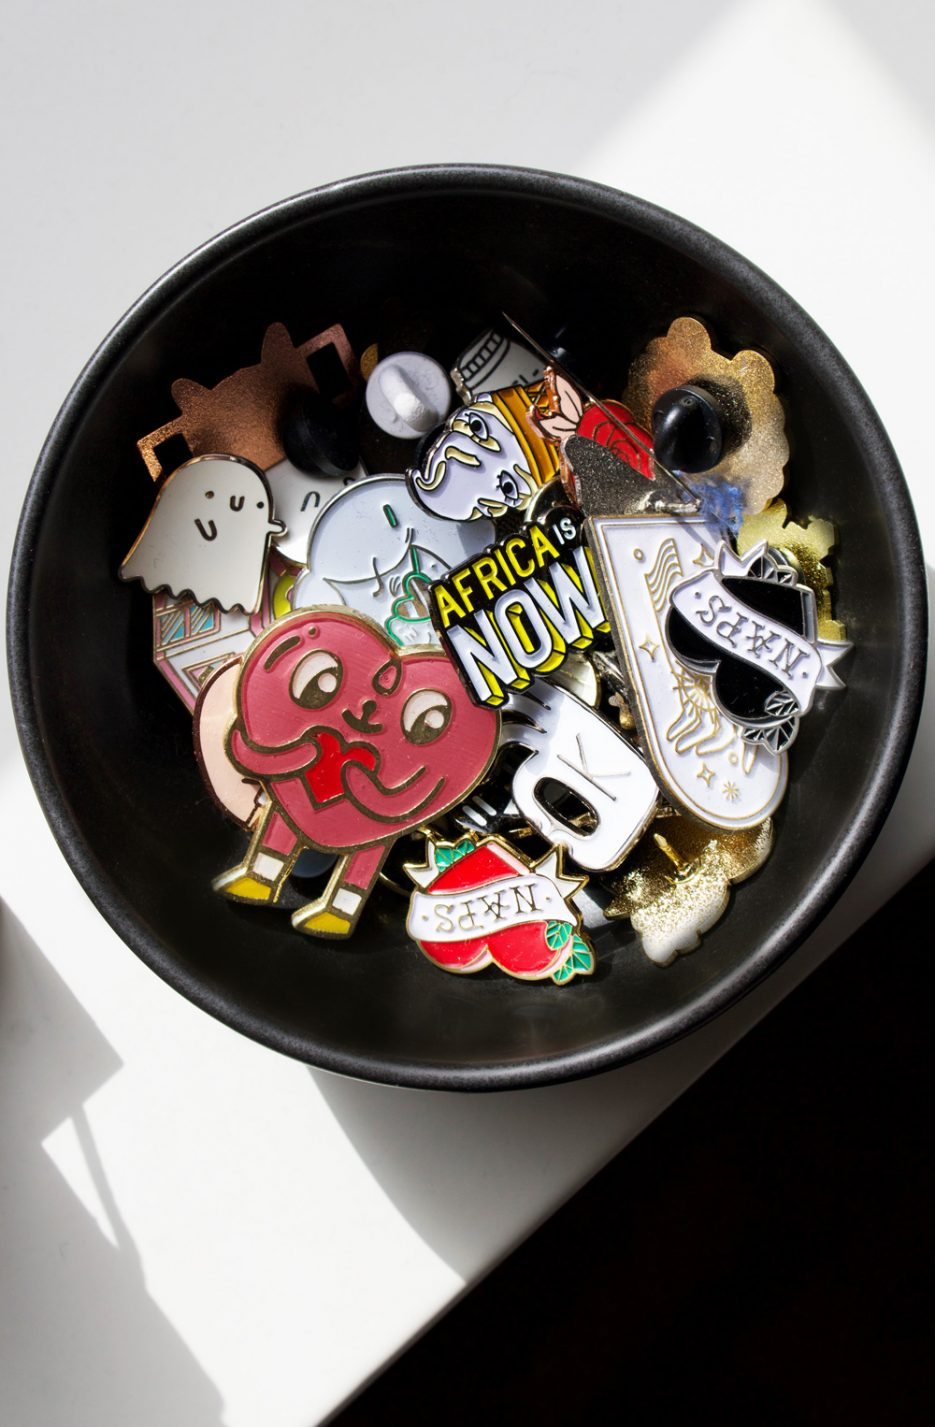 Nicole Dalton's collection of pins. Image by Amber Rose Cowie.